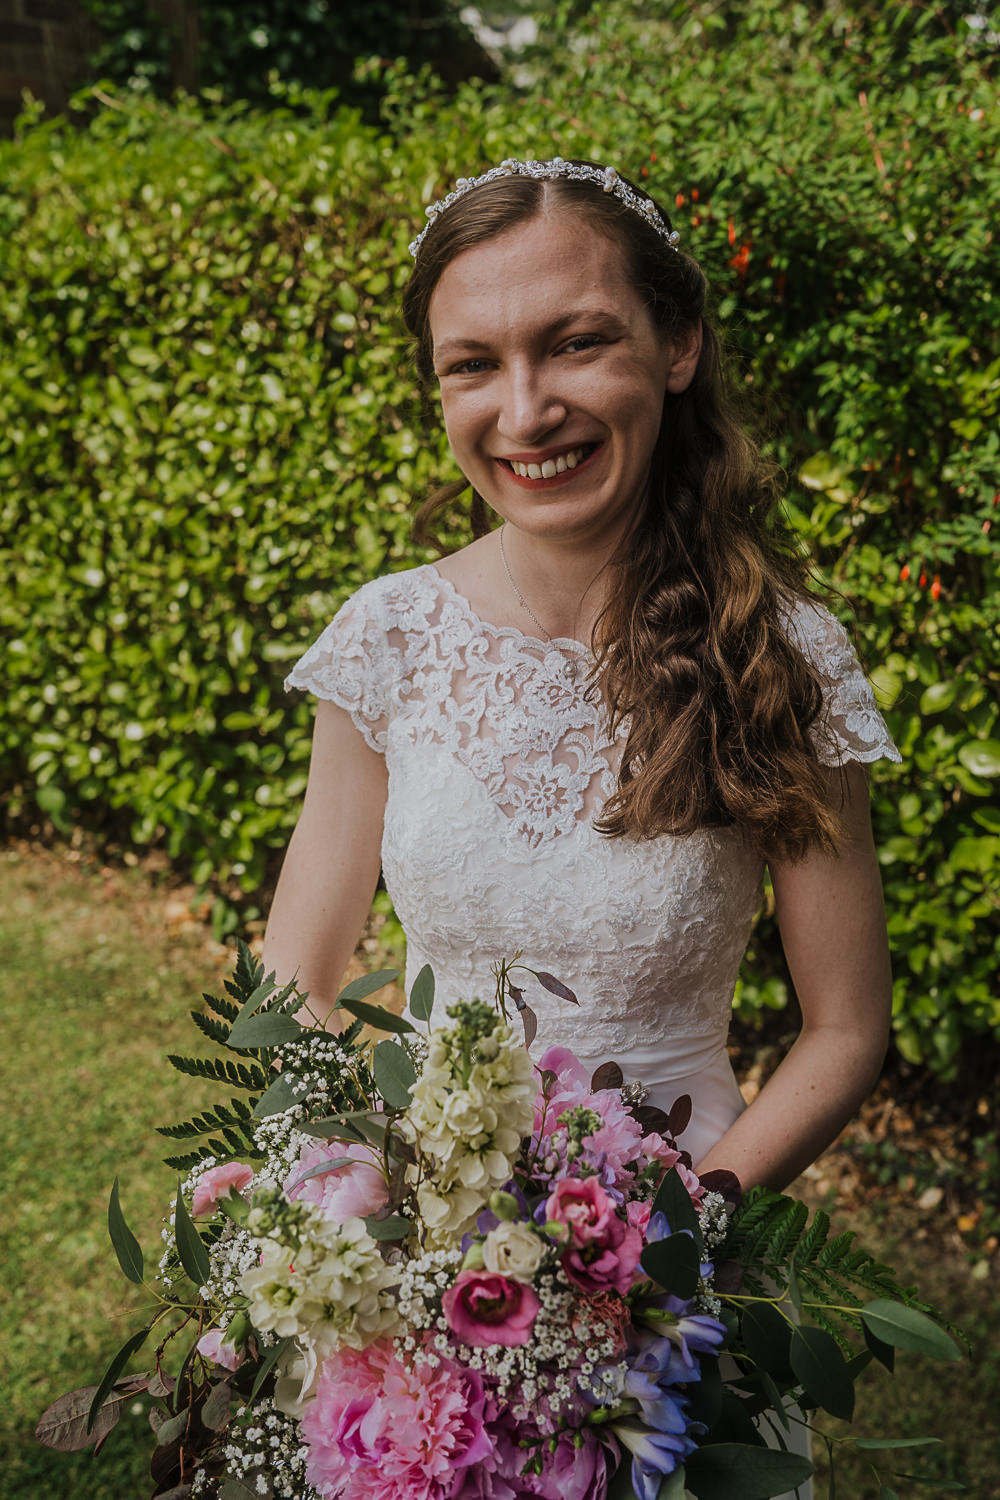 Dress Gown Bride Bridal Lace Cap Sleeves Wed2B Socially Distanced Wedding Tiffany Gage Photography